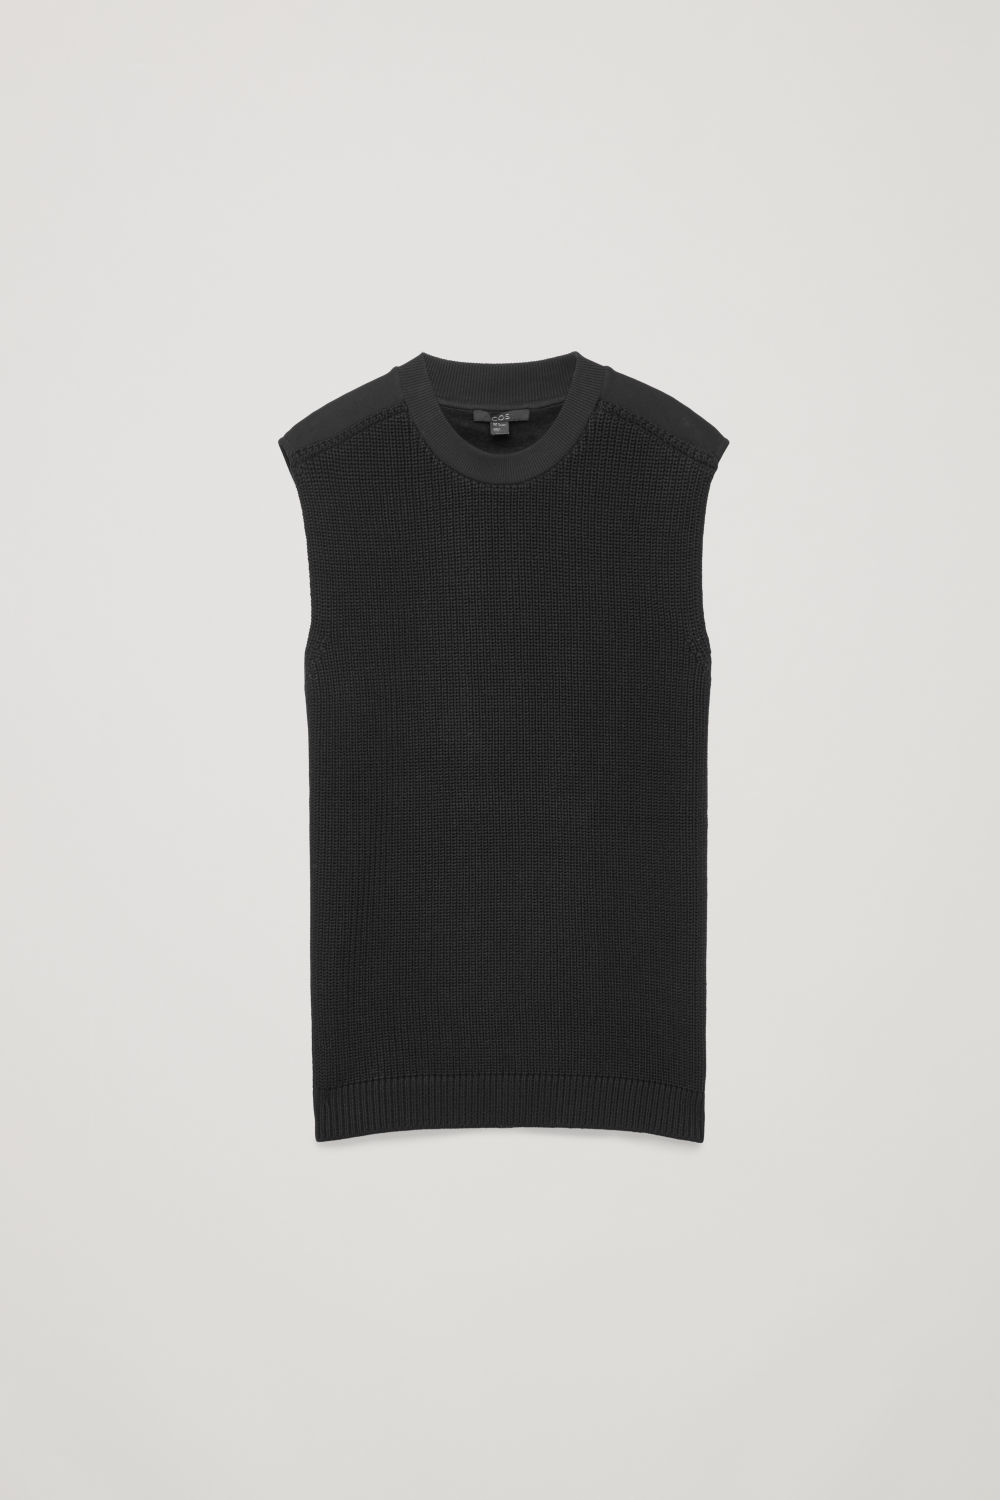 KNIT-JERSEY SLEEVELESS TOP